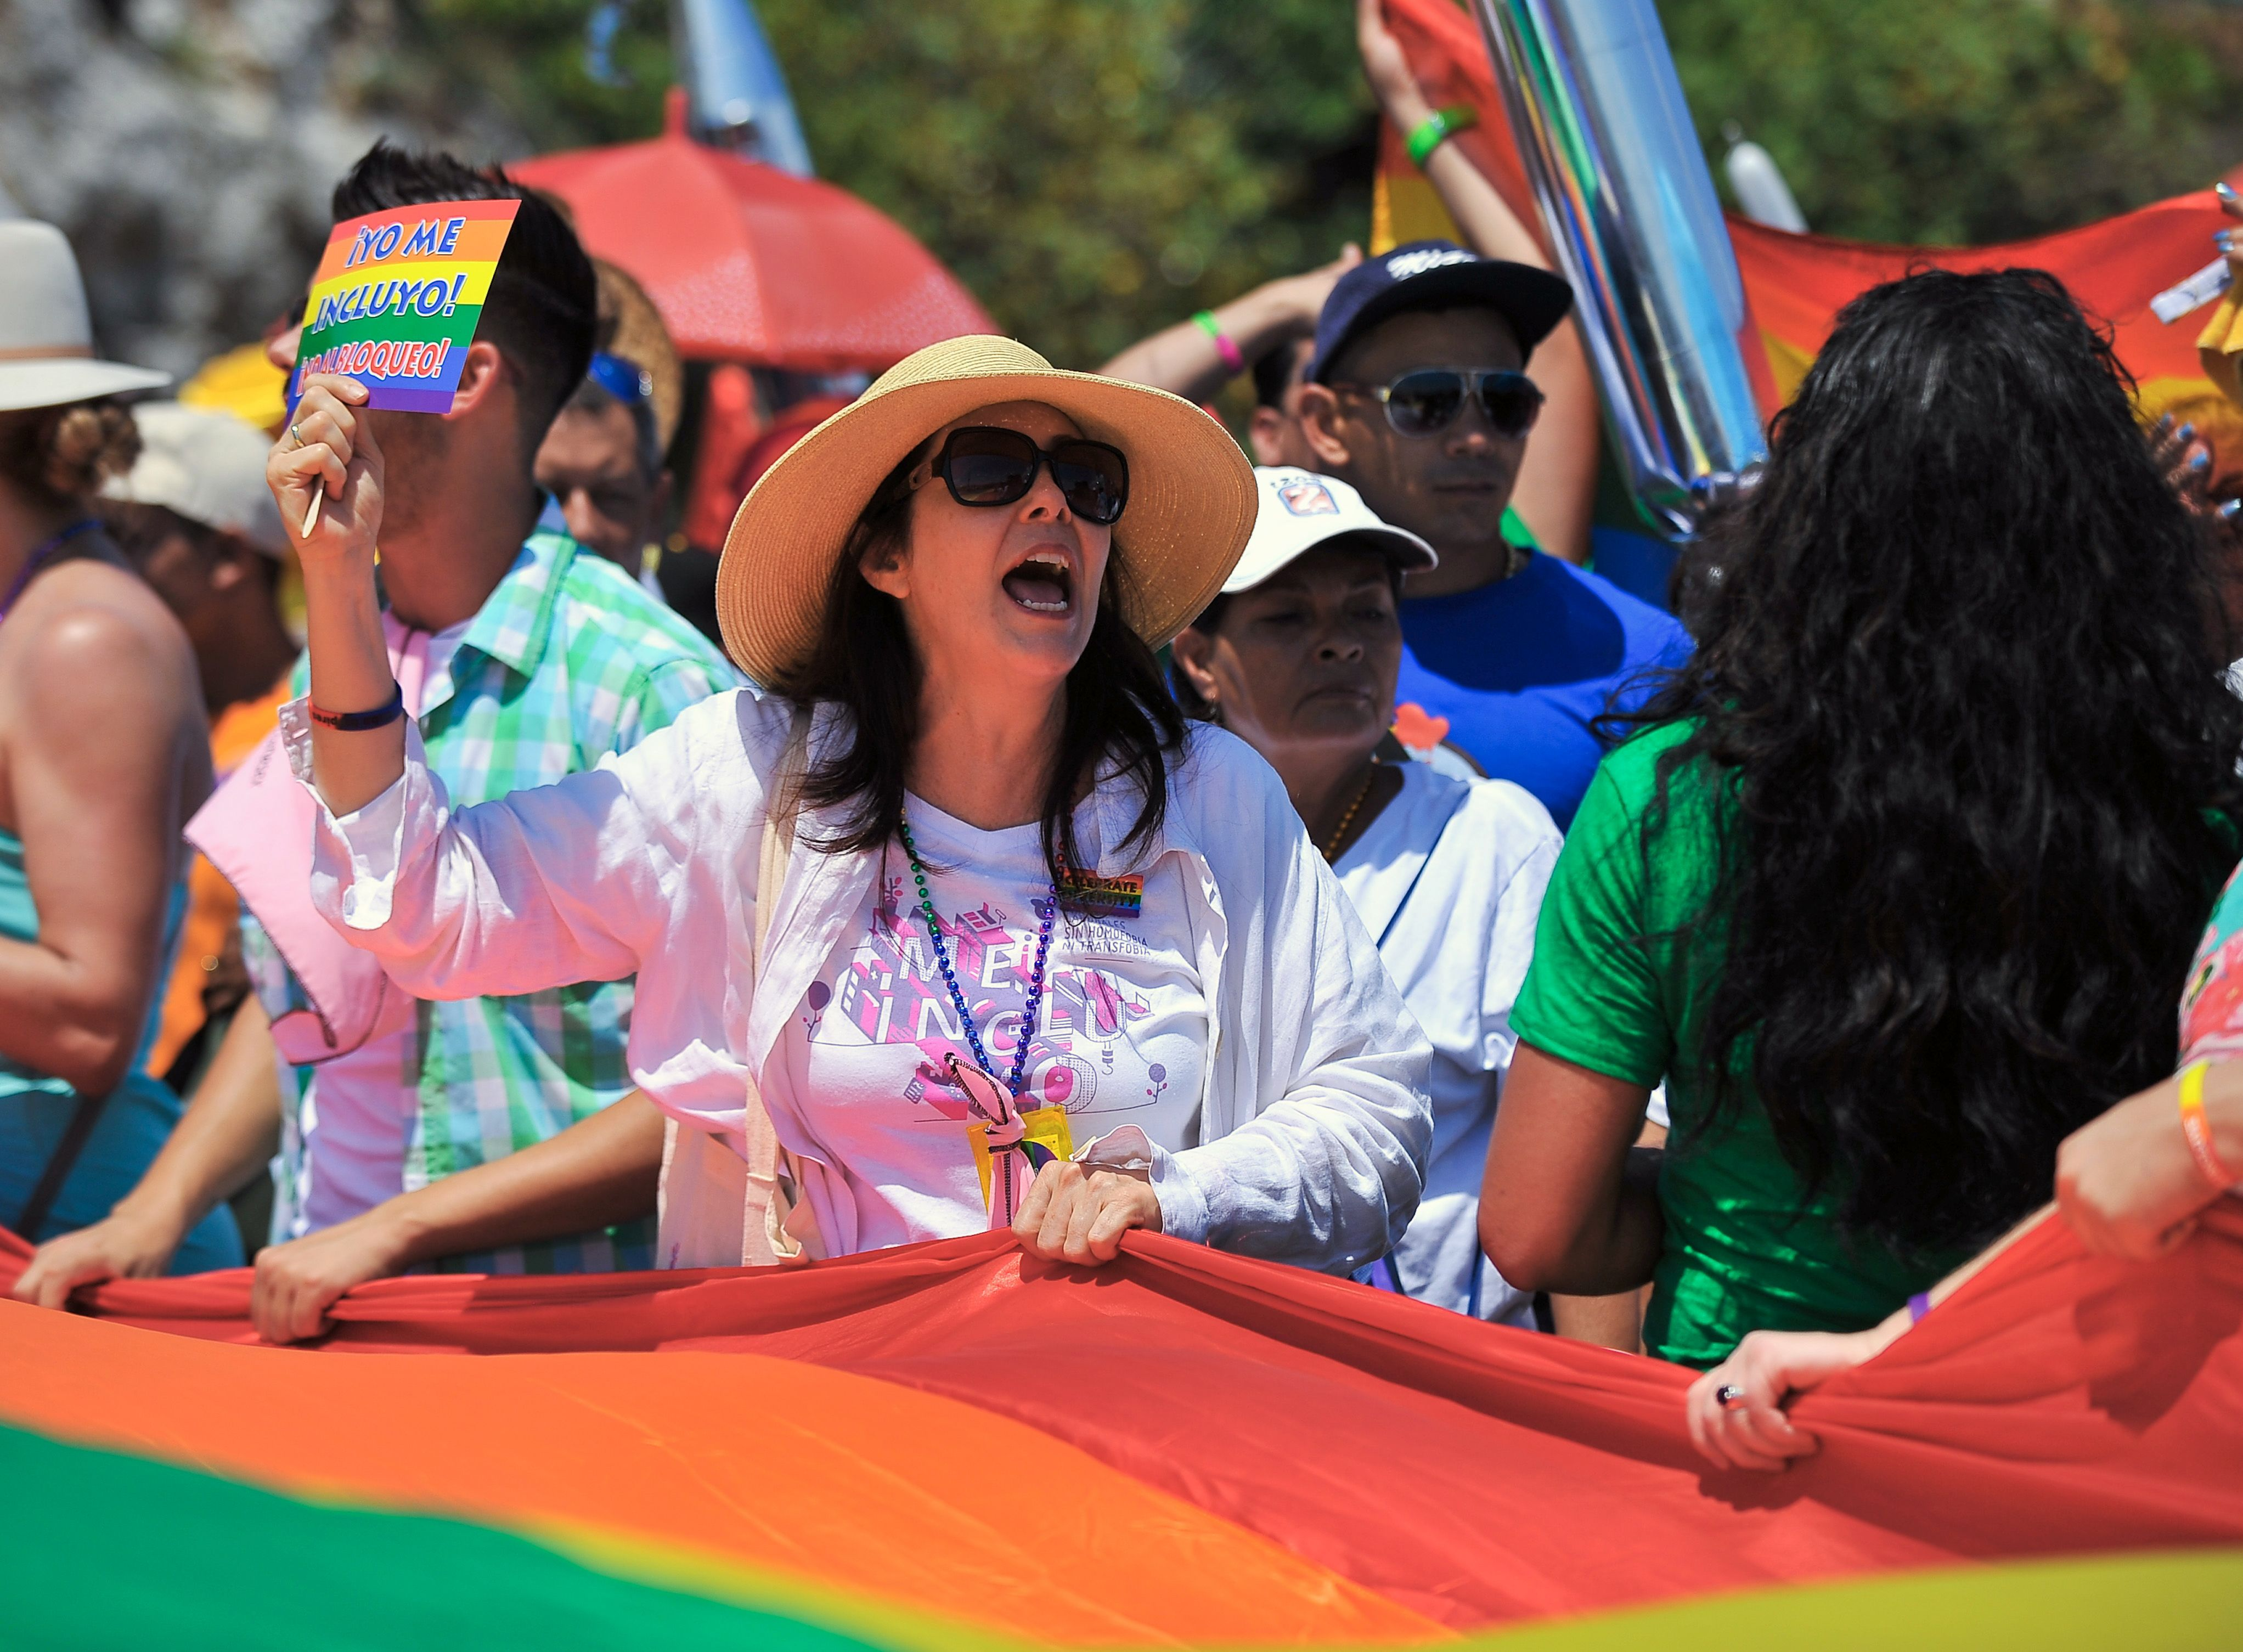 Mariela Castro, daughter of President Raul Castro who had supported opening the door to gay marriage in Cuba, participates in a march against homophobia on May 14, 2016 in Havana, Cuba.